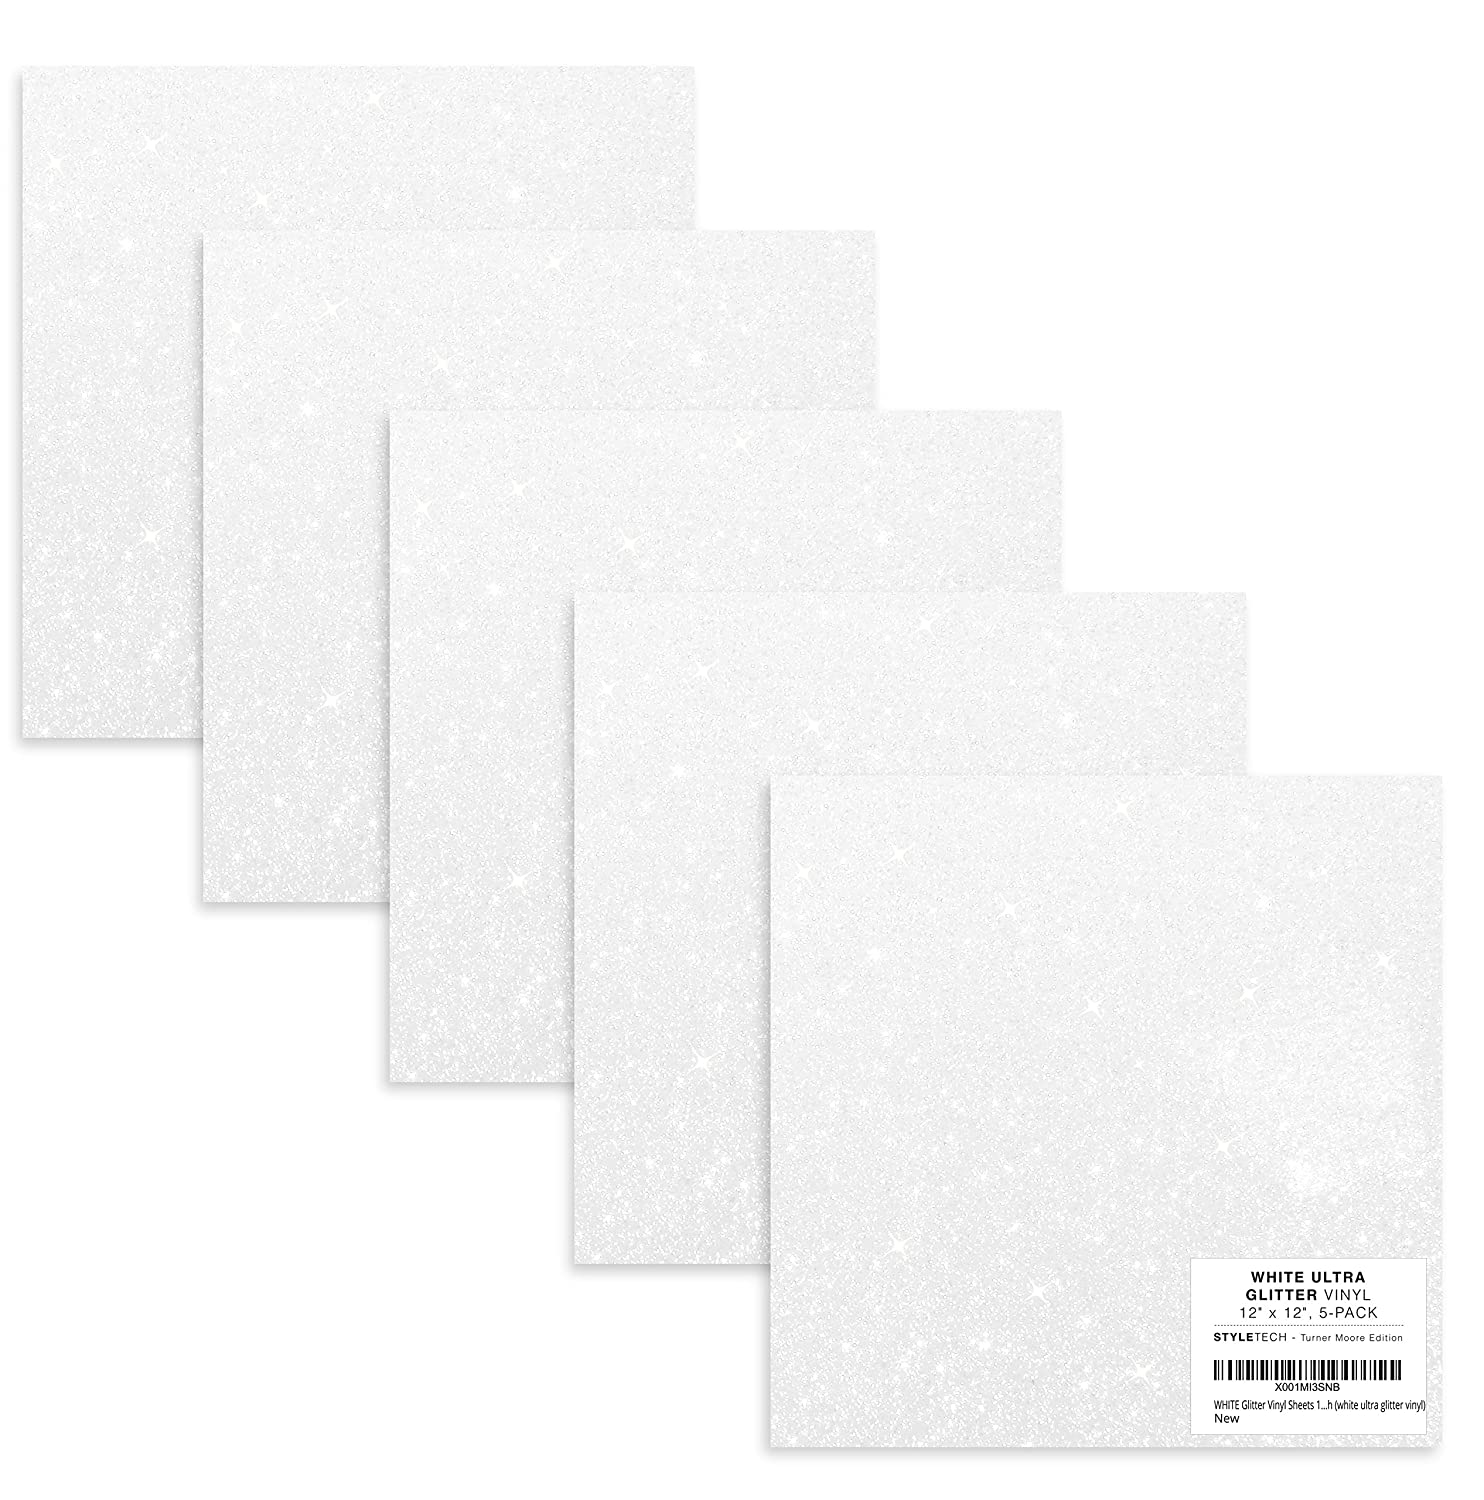 Amazon Com White Glitter Vinyl 12 X 12 Sheets Self Adhesive Glitter Vinyl For Cricut Maker Explore Silhouette Cameo Crafts Stickers Decals Tumblers Bottles Bonus Exclusive Sample By Turner Moore 5pk Industrial